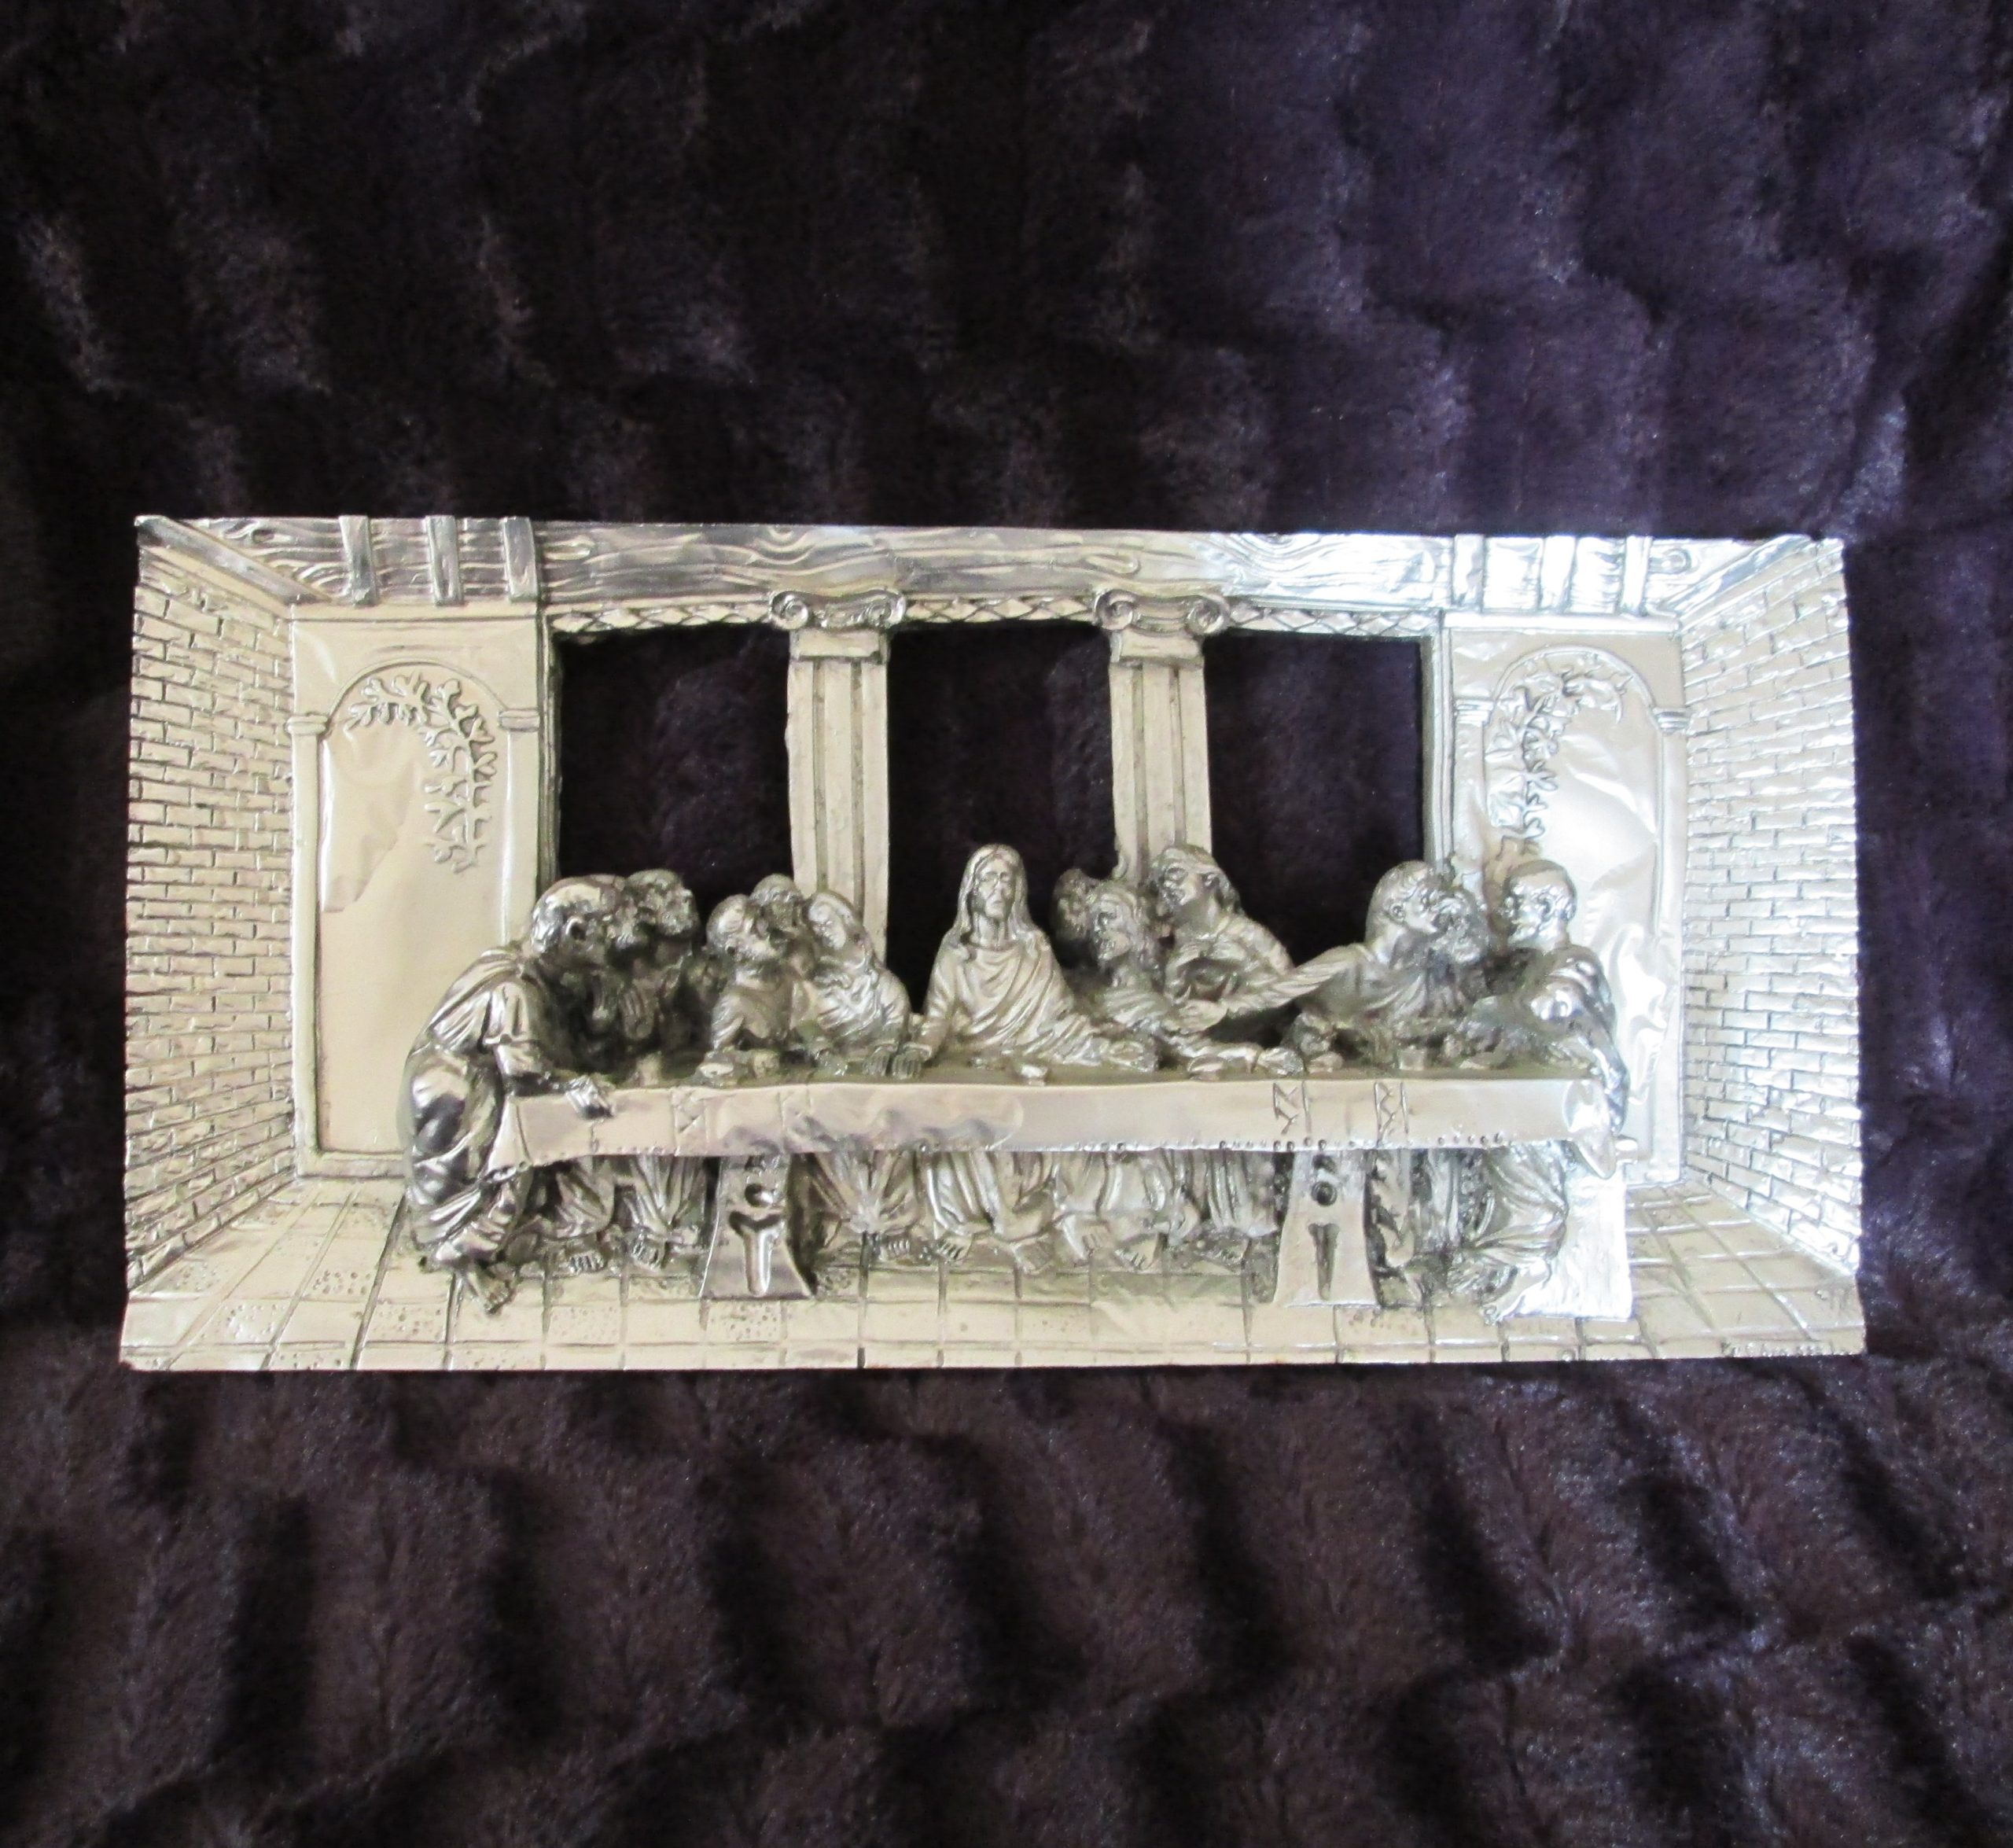 da vinci's last supper silver over plaster